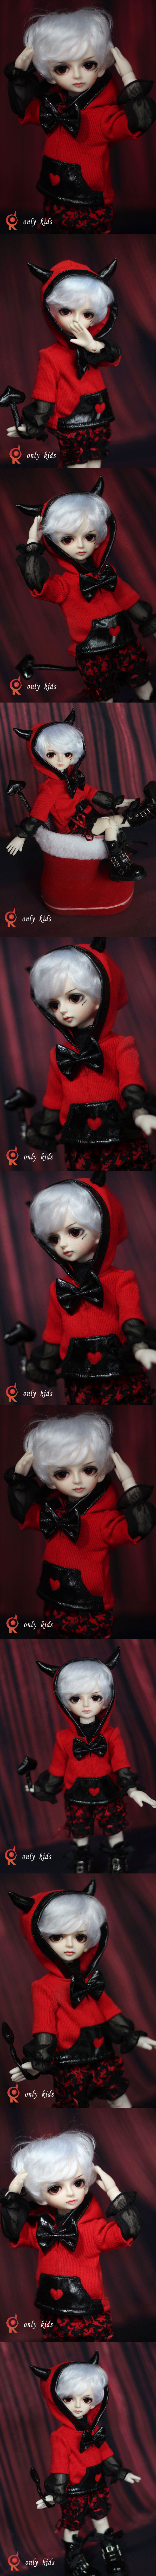 Bjd Clothes costume set for Yo-SD size doll Ball-jointed Doll